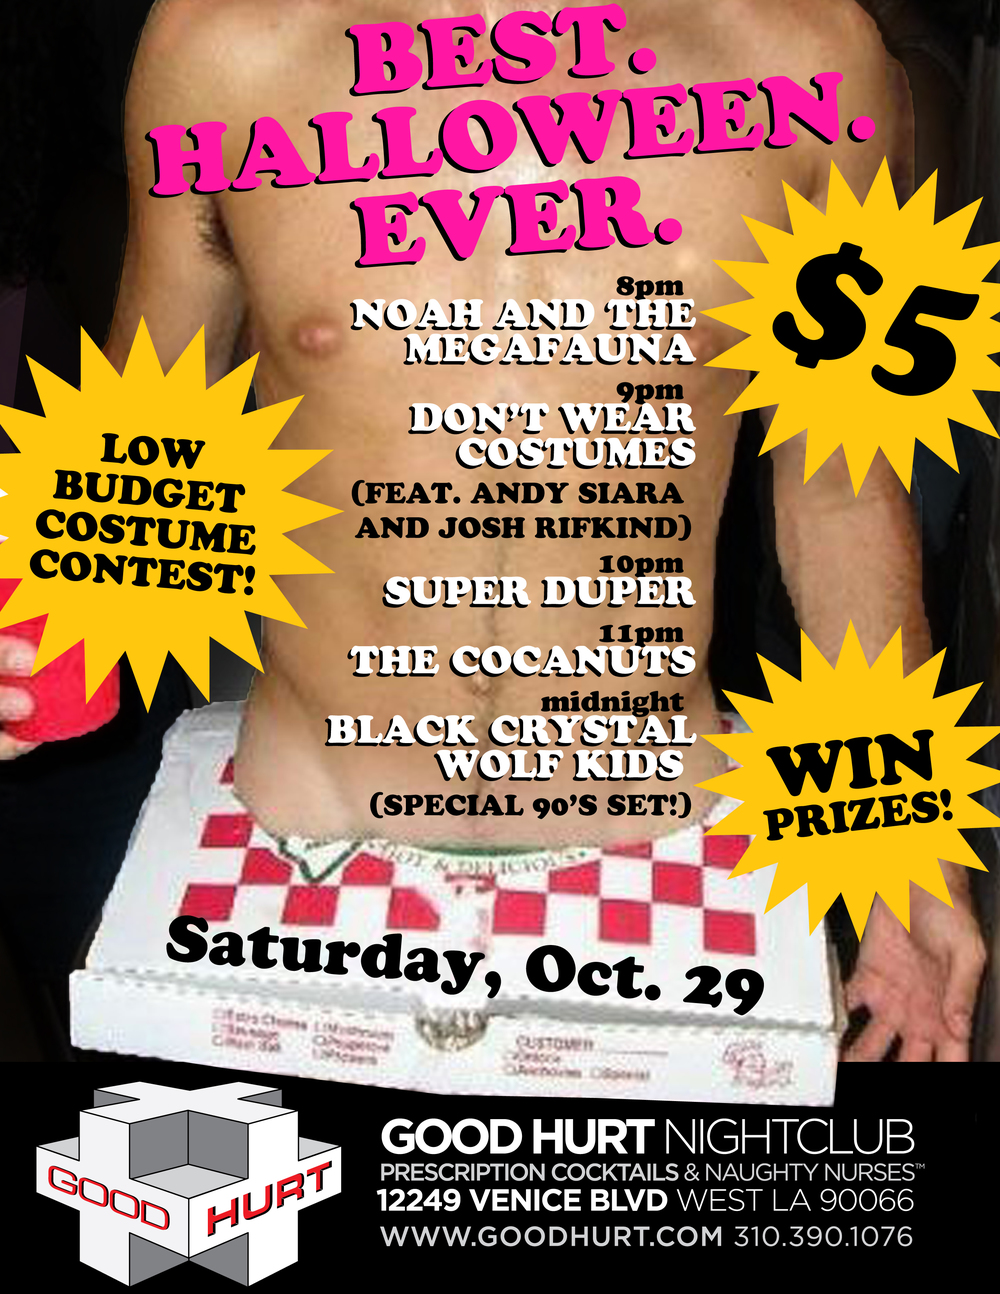 WESTSIDE-halloween-flyer-FINAL.jpg